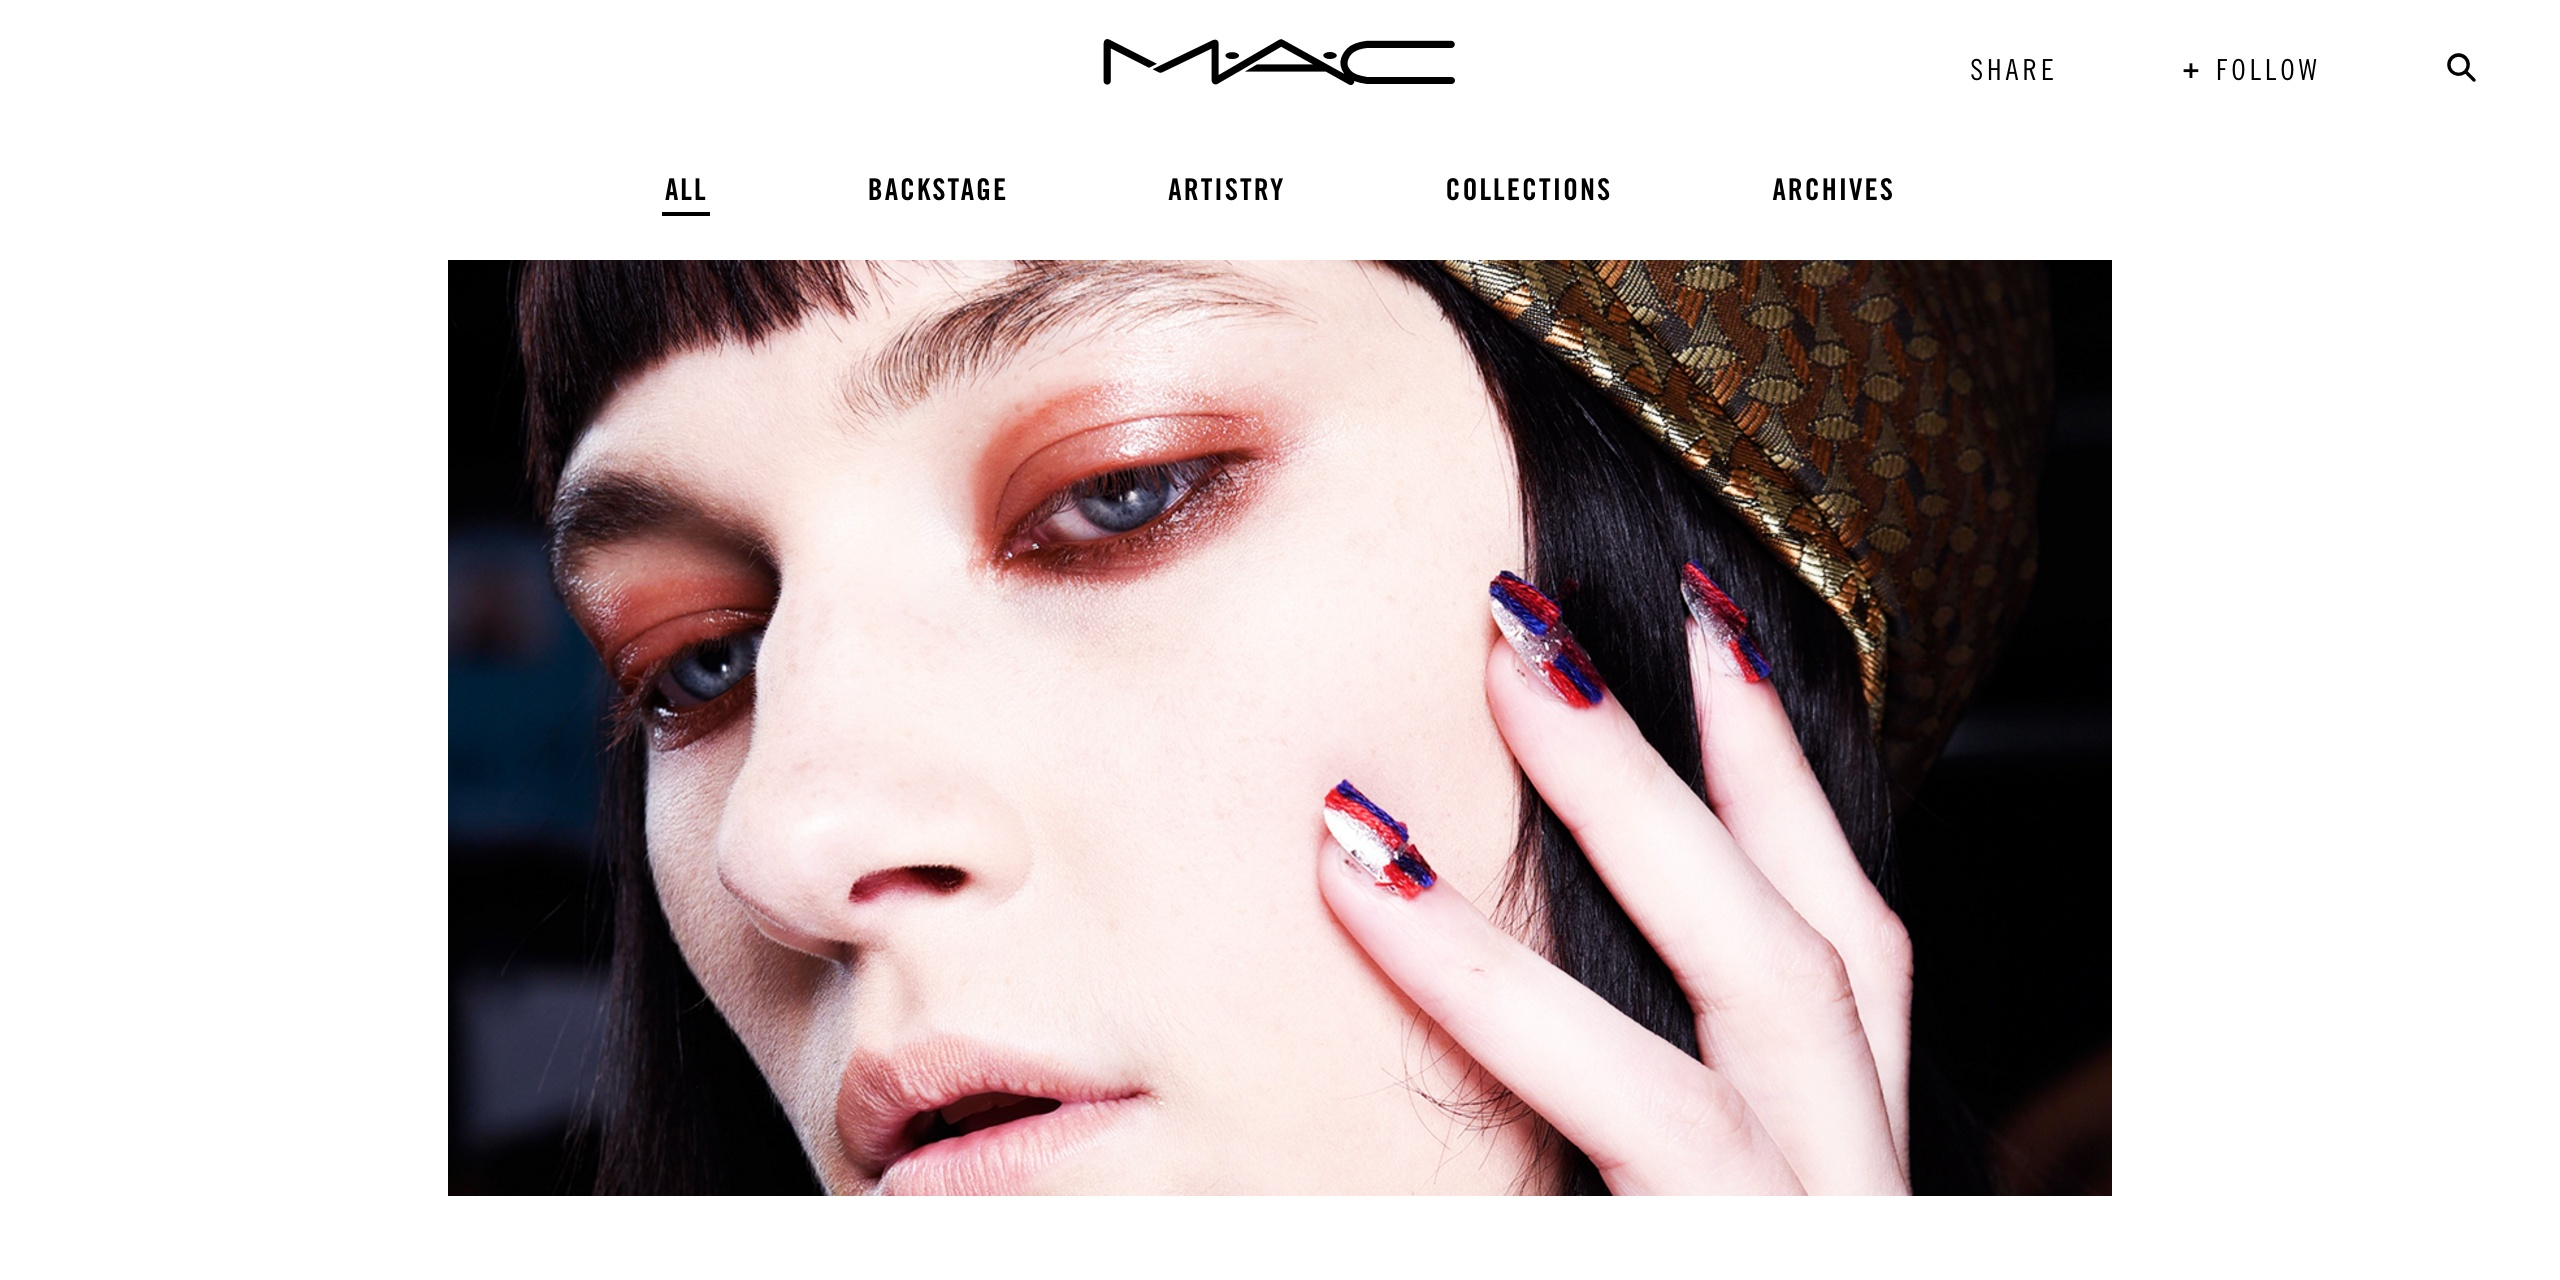 an introduction to the make up art cosmetics Free essay: make-up art cosmetics make-up art cosmetics, also known as mac cosmetics is a highly unique corporation its founders and business strategies.